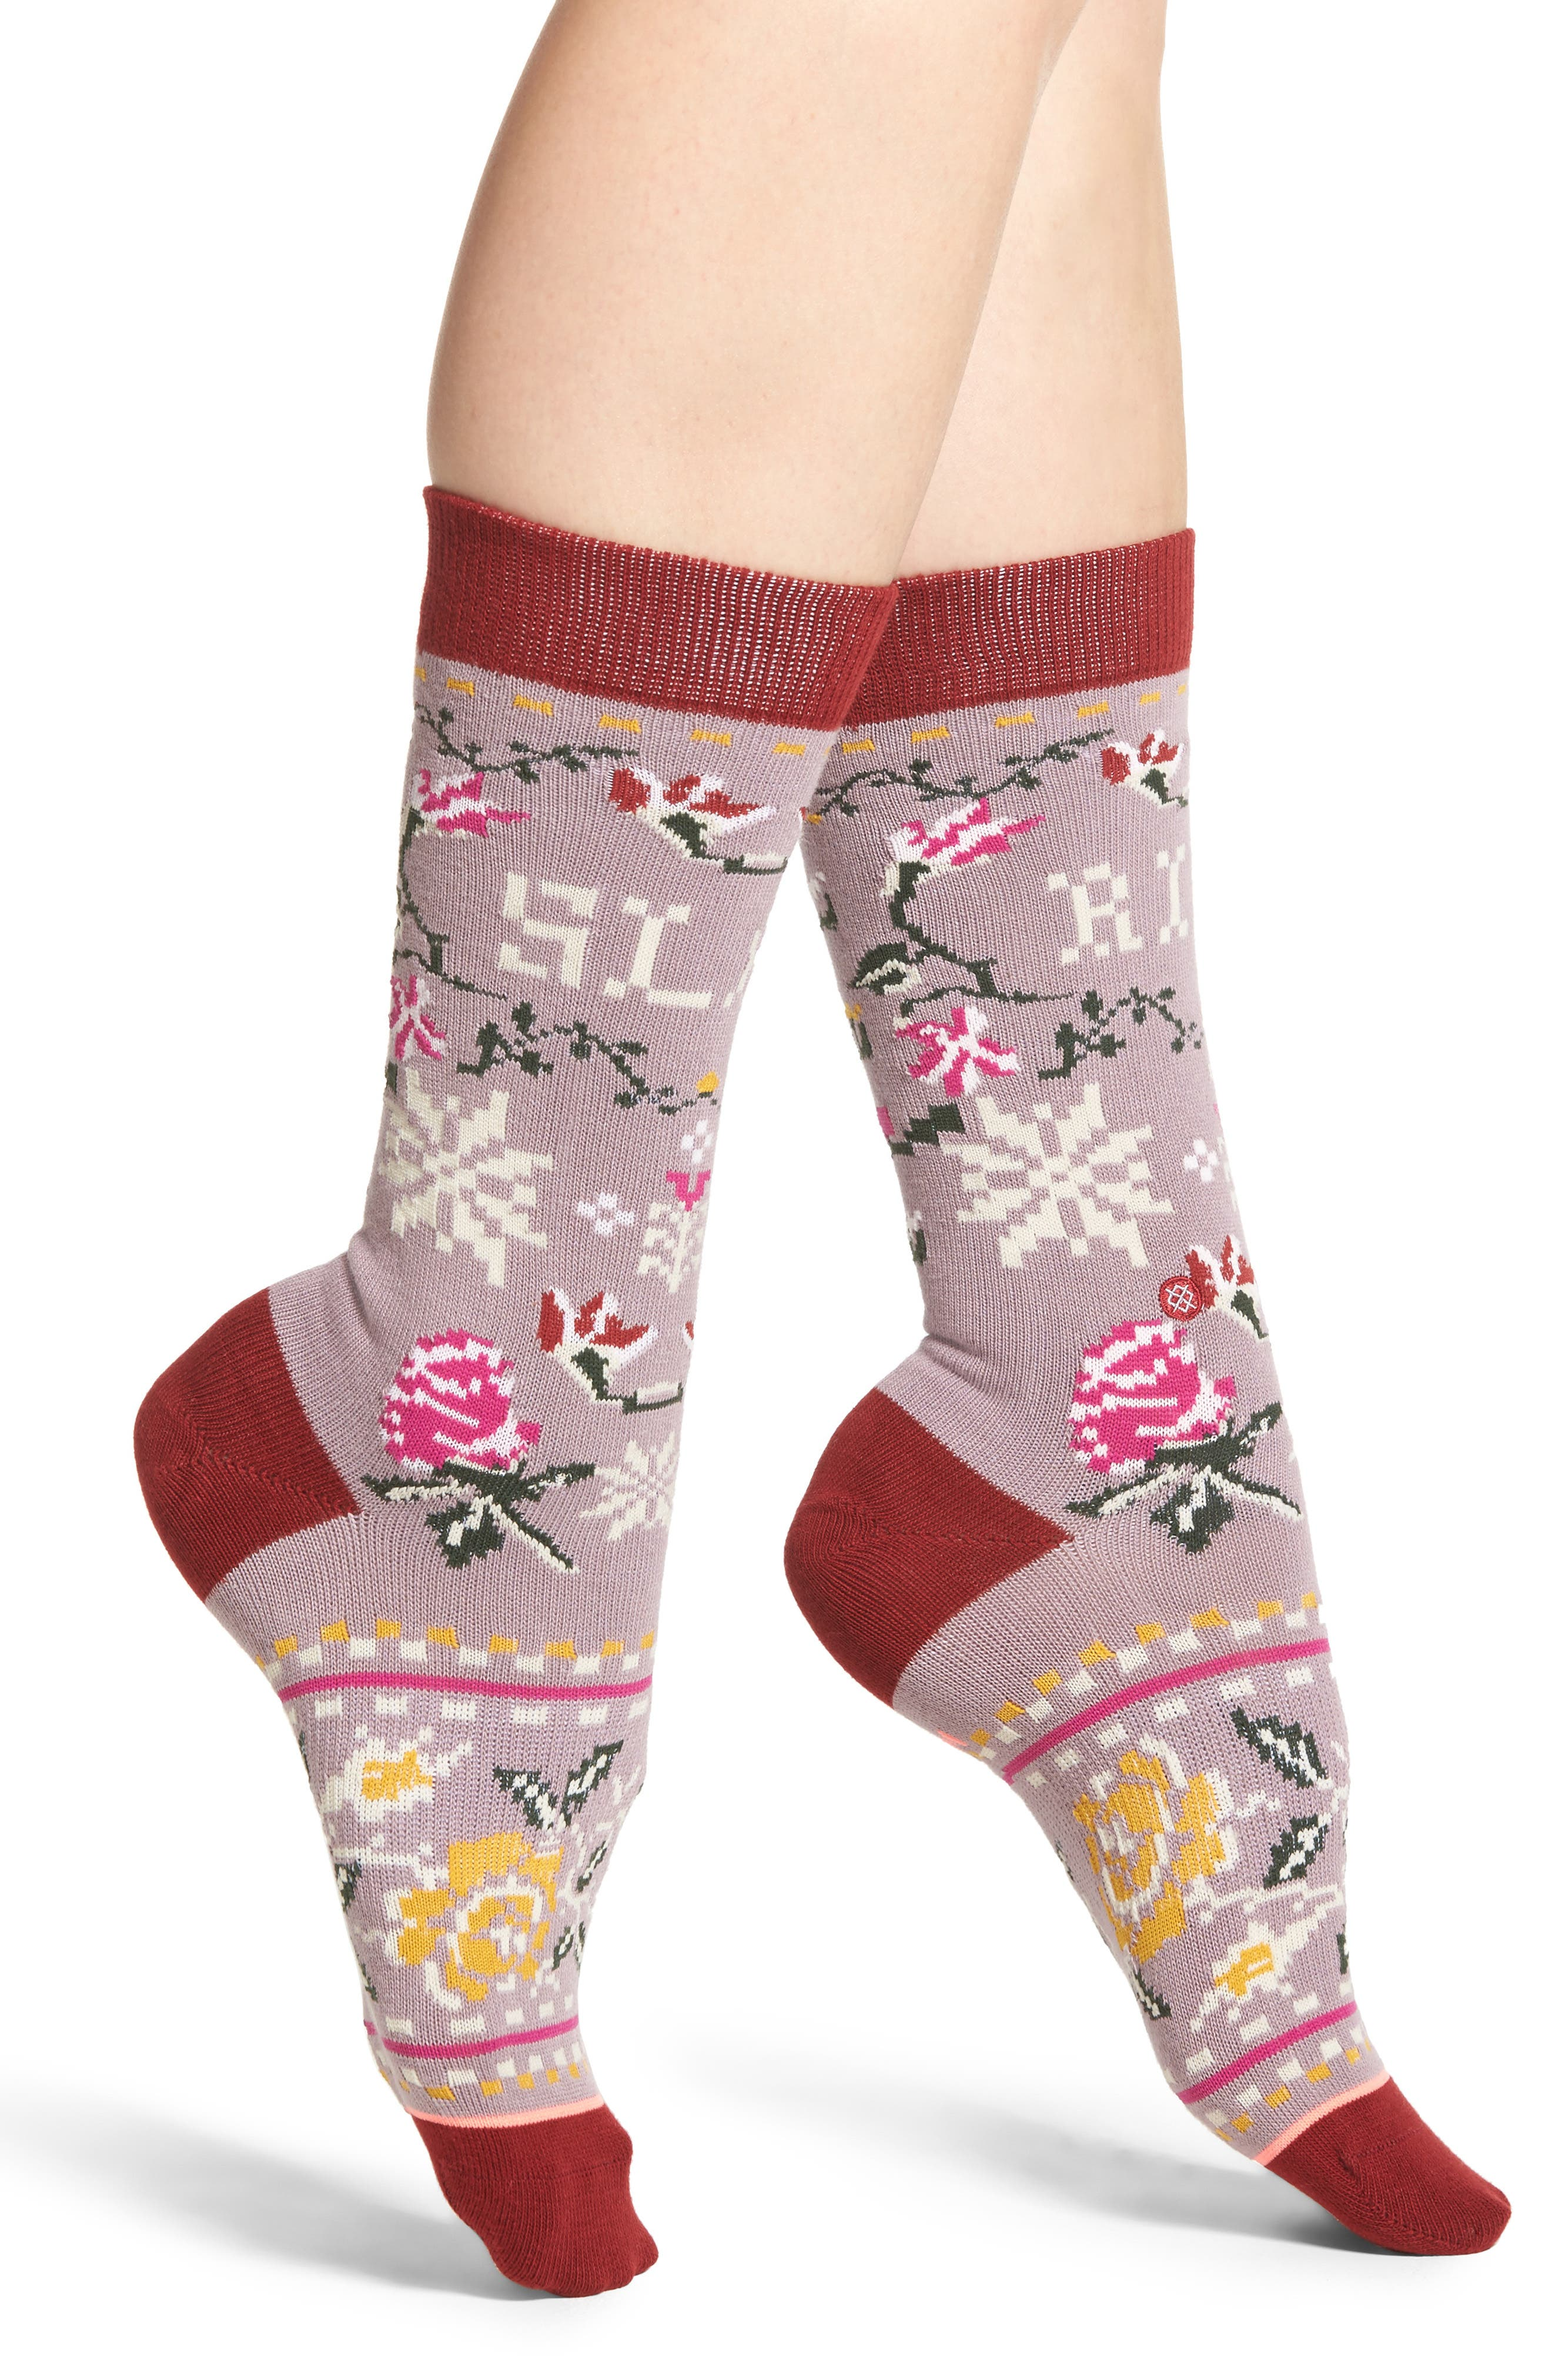 Main Image - Stance Slay Ride Tomboy Crew Socks